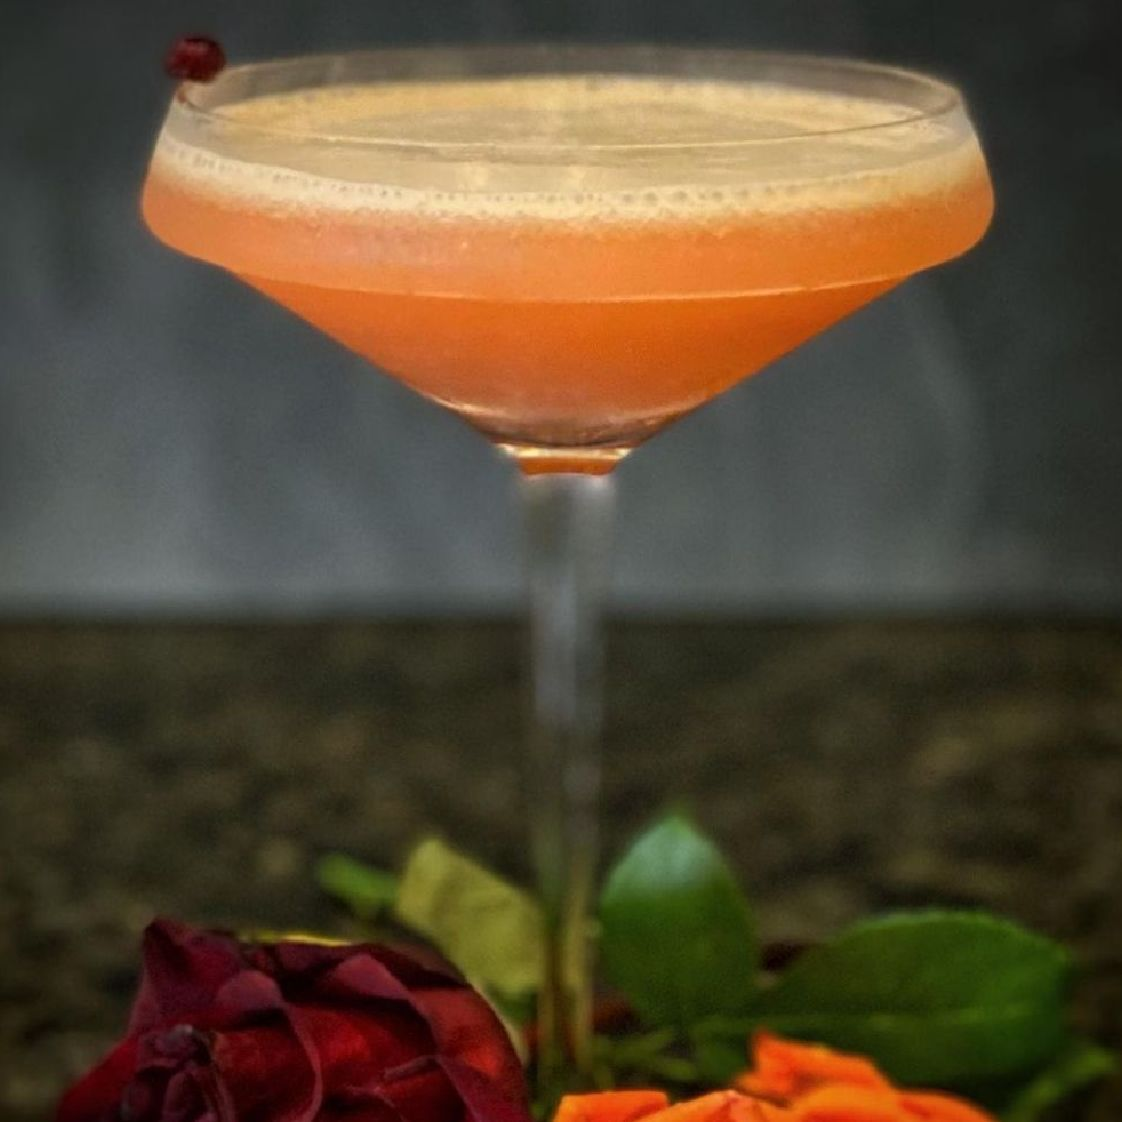 SkiGrrrl is the creator of this cocktail. She featured our Sicilian Blood Orange to create this cocktail. Here is the original post.